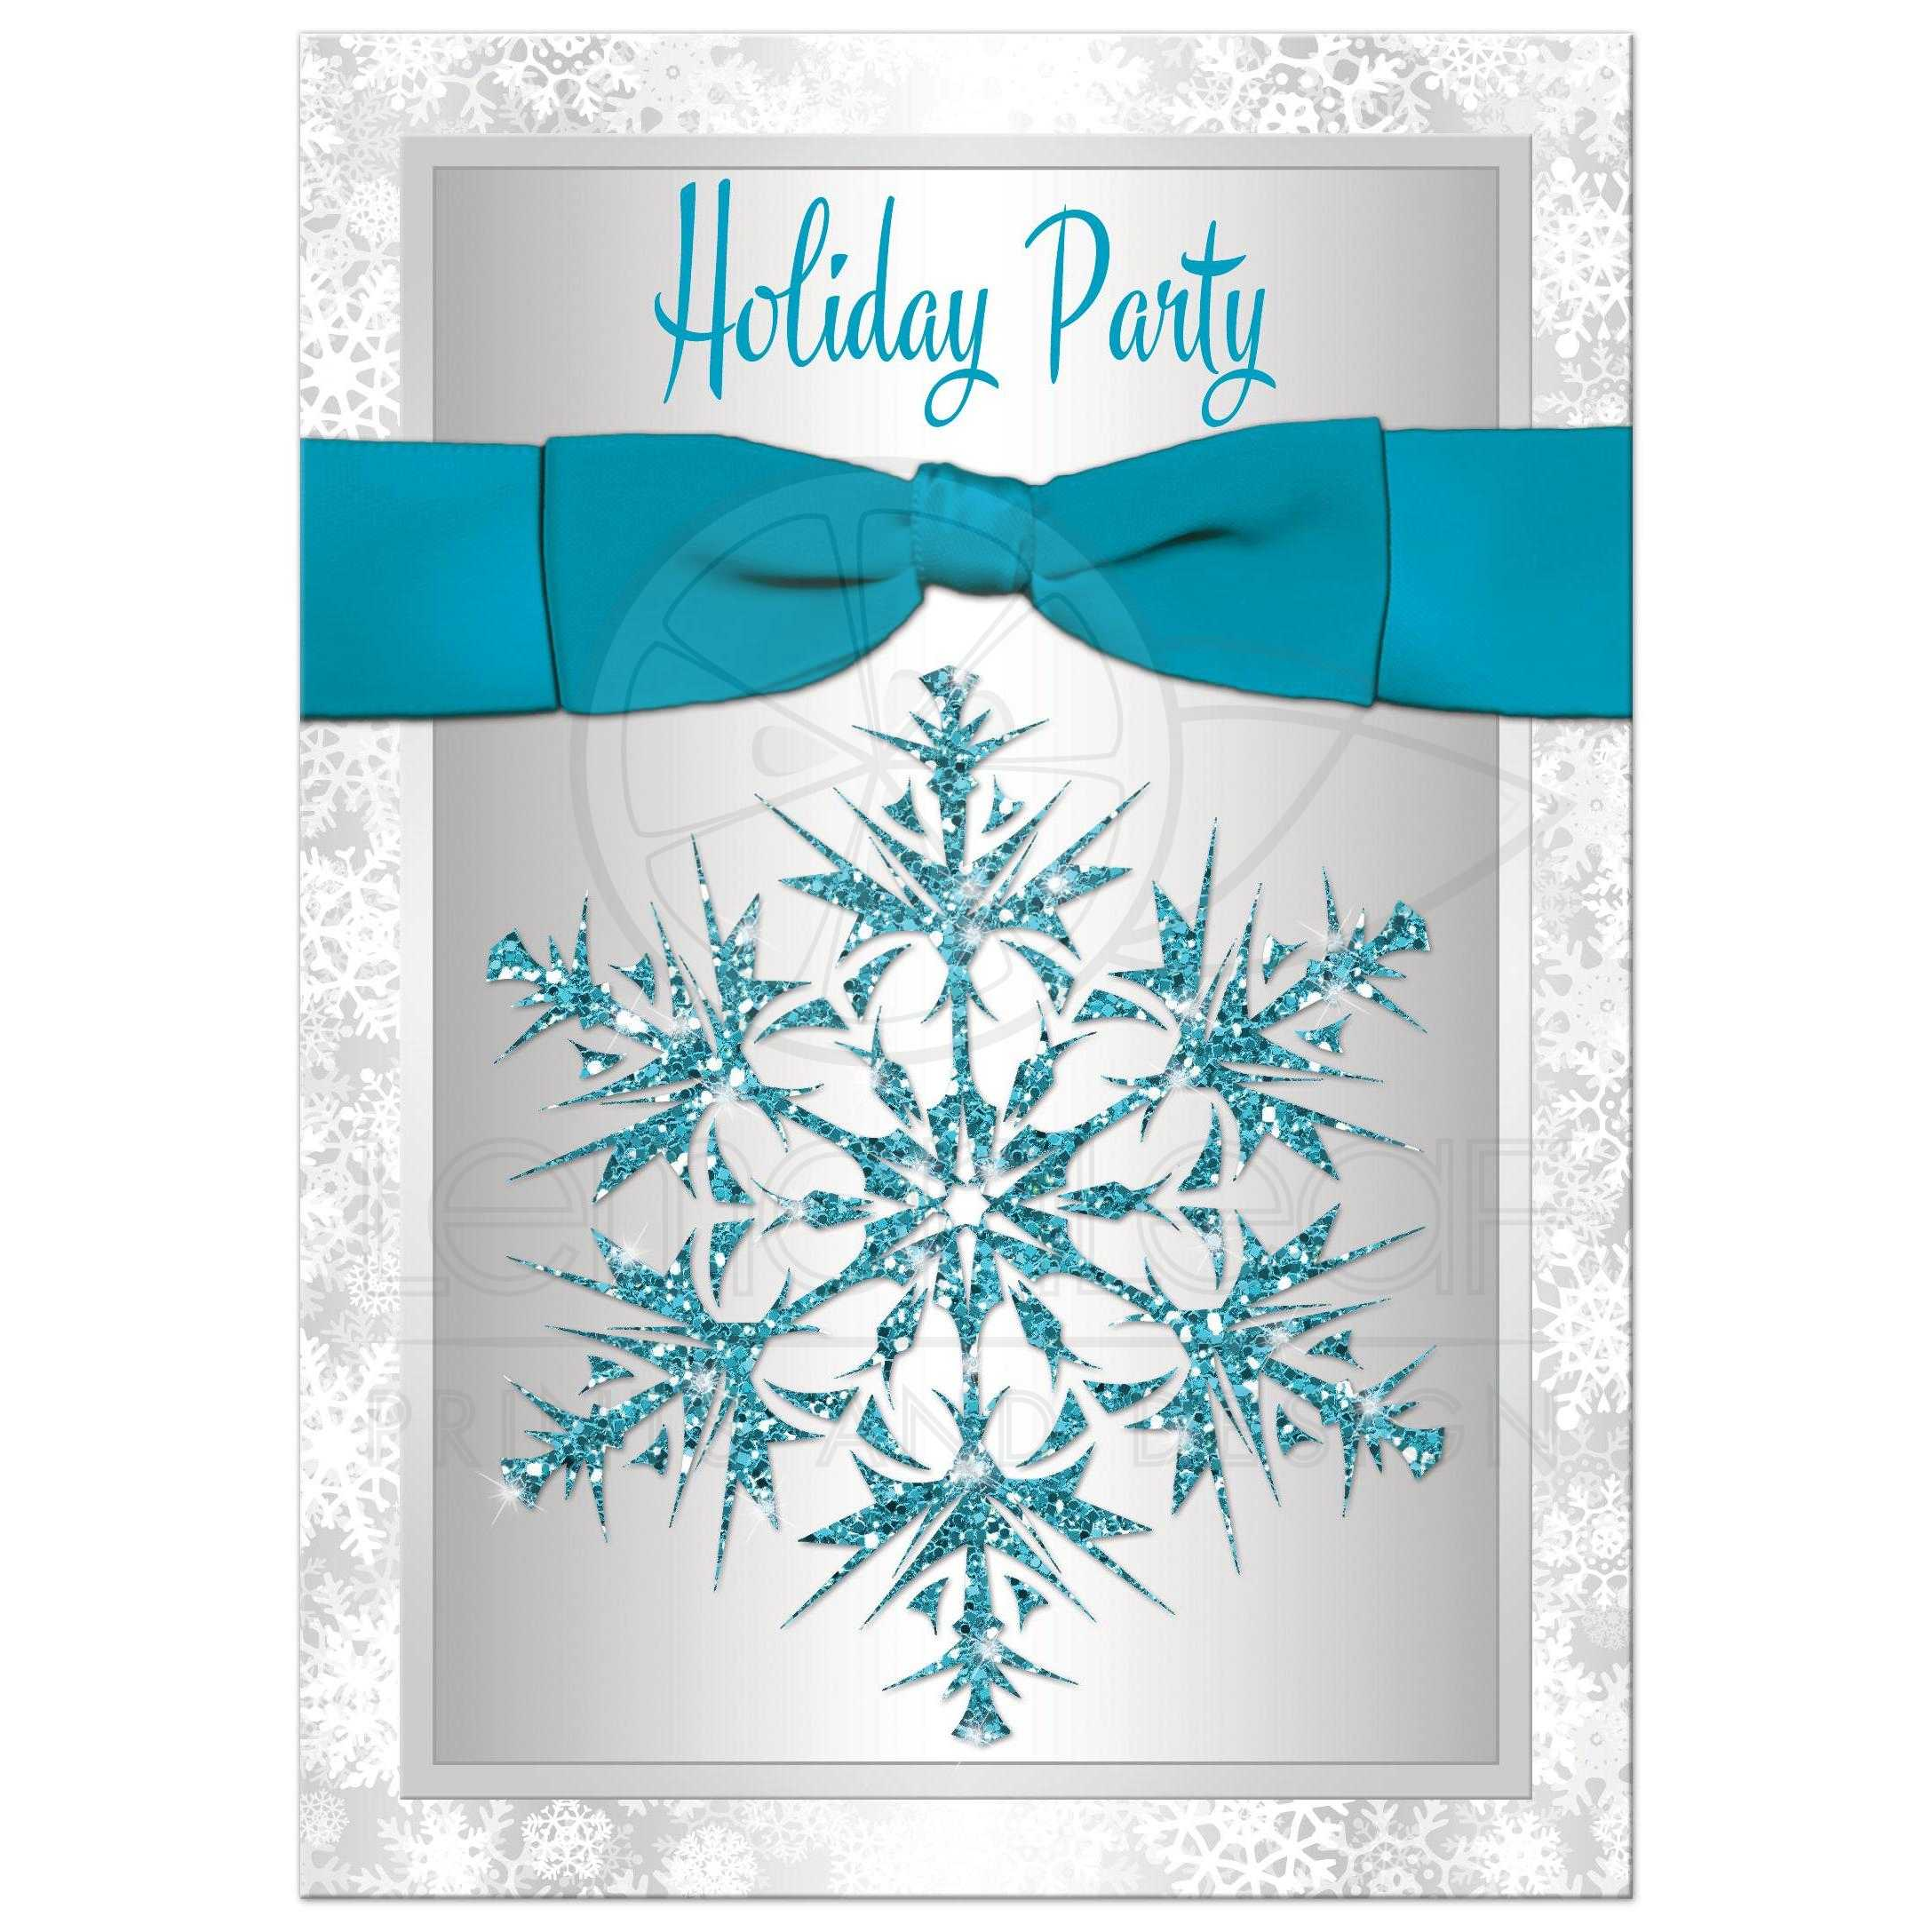 holiday party invitation turquoise gray white simulated best silver and white snowflakes winter holiday corporate fundraiser or christmas party invitation